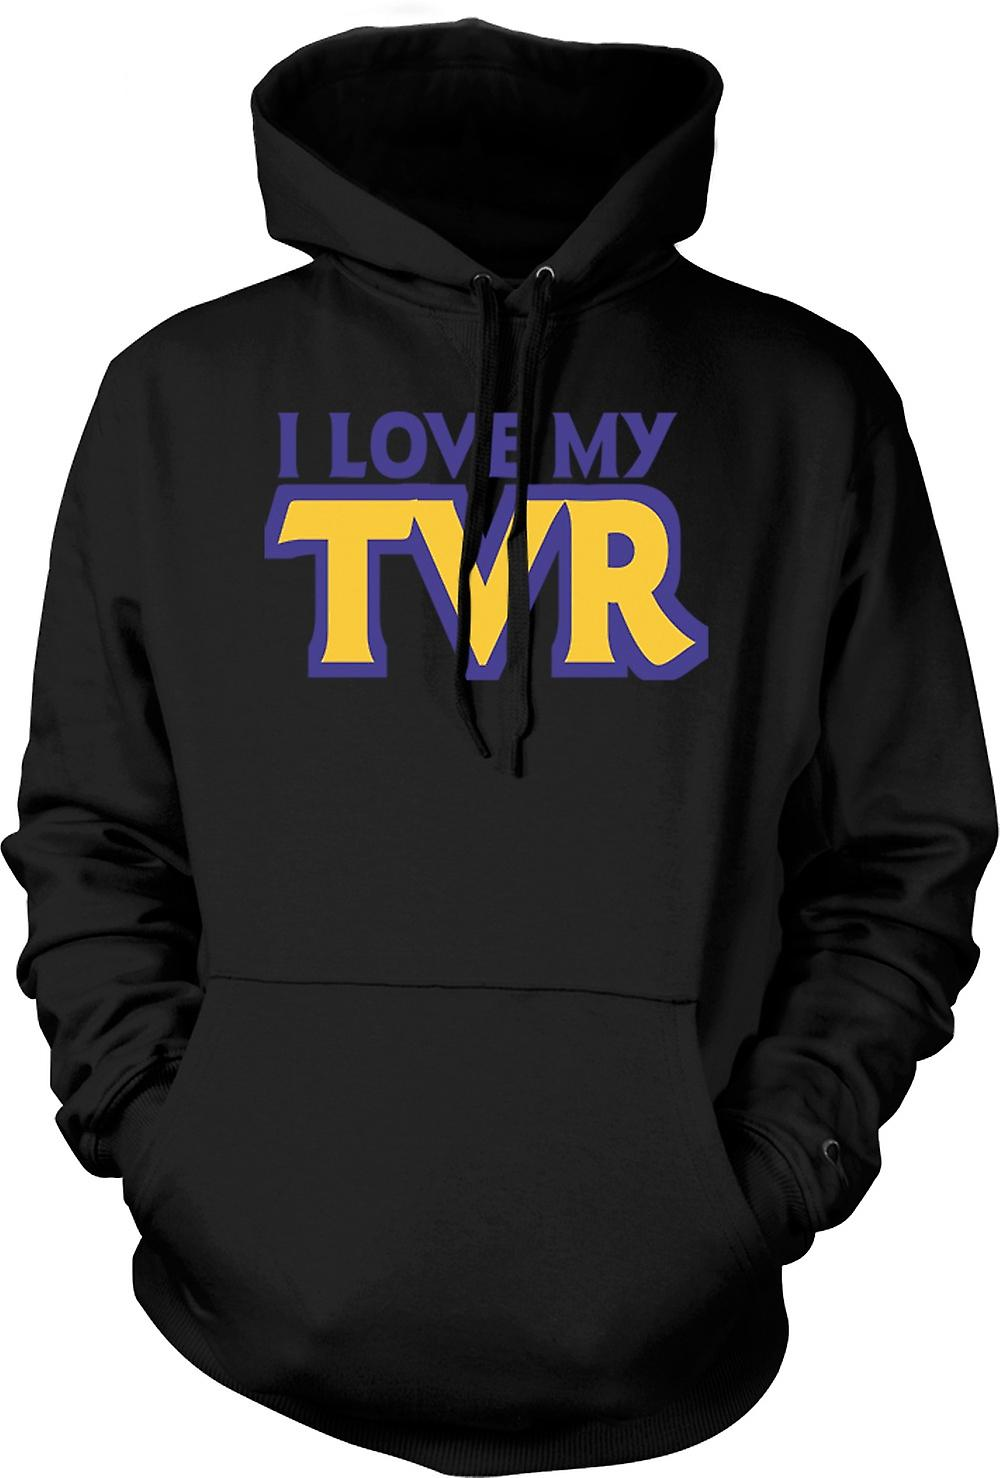 Mens Hoodie - I love my TVR - Car Enthusiast